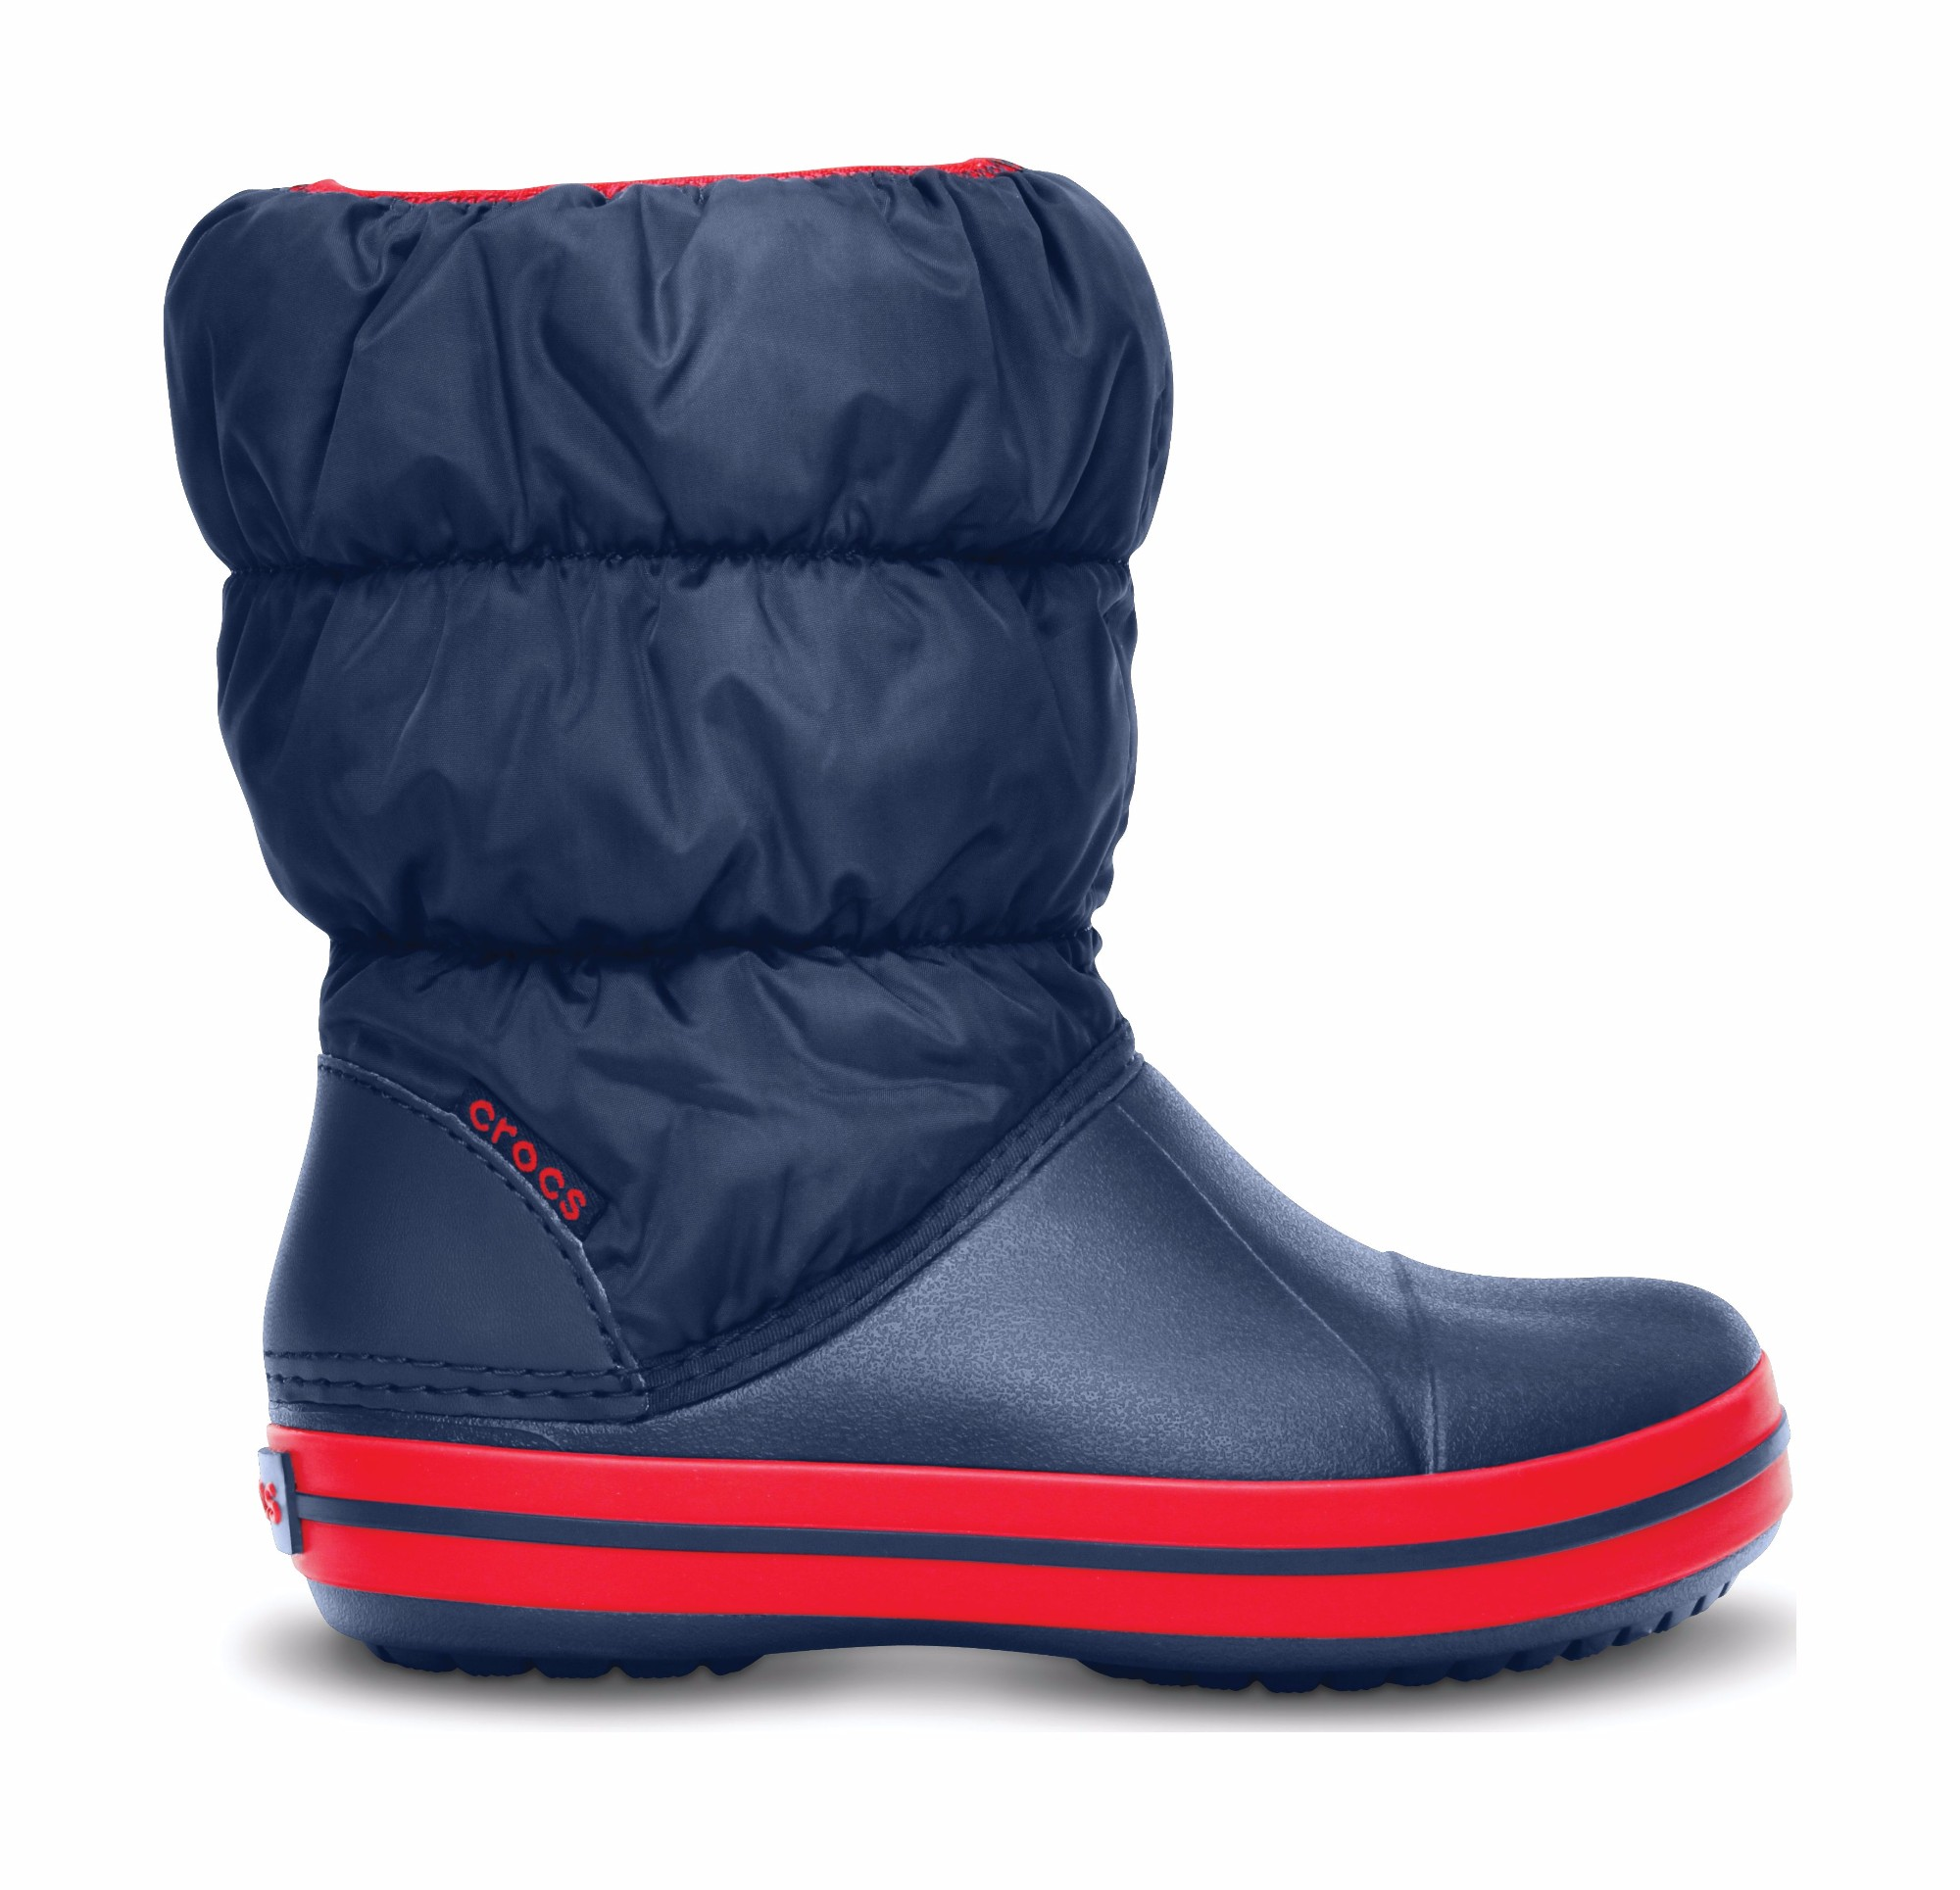 Crocs™ Kids' Winter Puff Boot Dark blue/Red 33,5